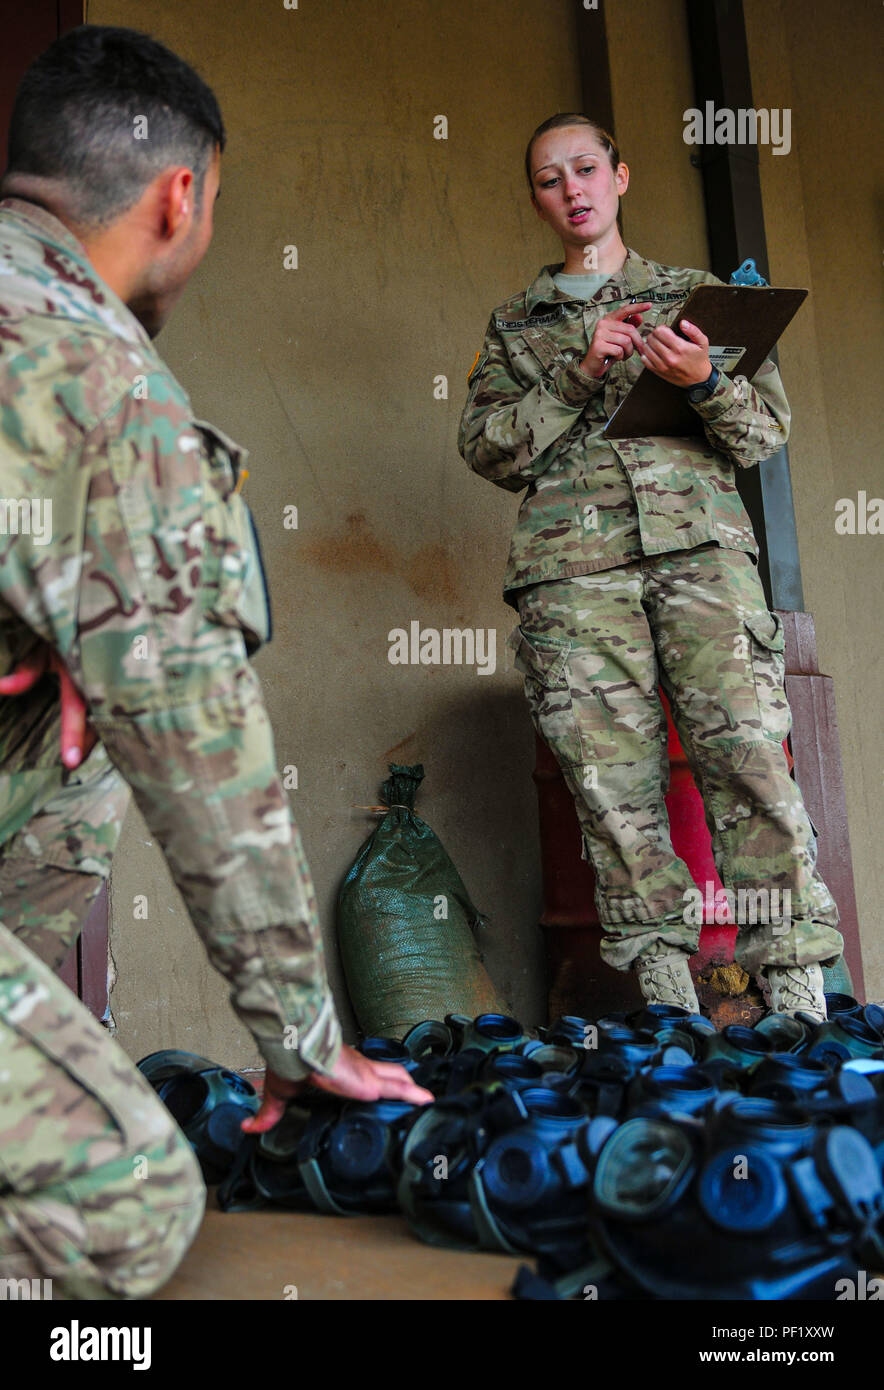 During an inventory check on Feb. 17, 2016, on Schofield Barracks, here, 1st Lt. Brenna Heisterman, an engineering officer and the executive officer with Headquarters and Headquarters Company, 2nd Brigade Combat Team, 25th Infantry Division, and Sgt. Macel Gonzalez, an infantryman with HHC, 2nd BCT, discuss the amount protective masks assigned to HHC. Heisterman had recently returned from San Diego, where she donated her bone marrow to a cancer patient from the country of Turkey. (U.S. Army photo by Sgt. Ian Ives, 2nd Stryker Brigade Combat Team Public Affairs/Released) - Stock Image